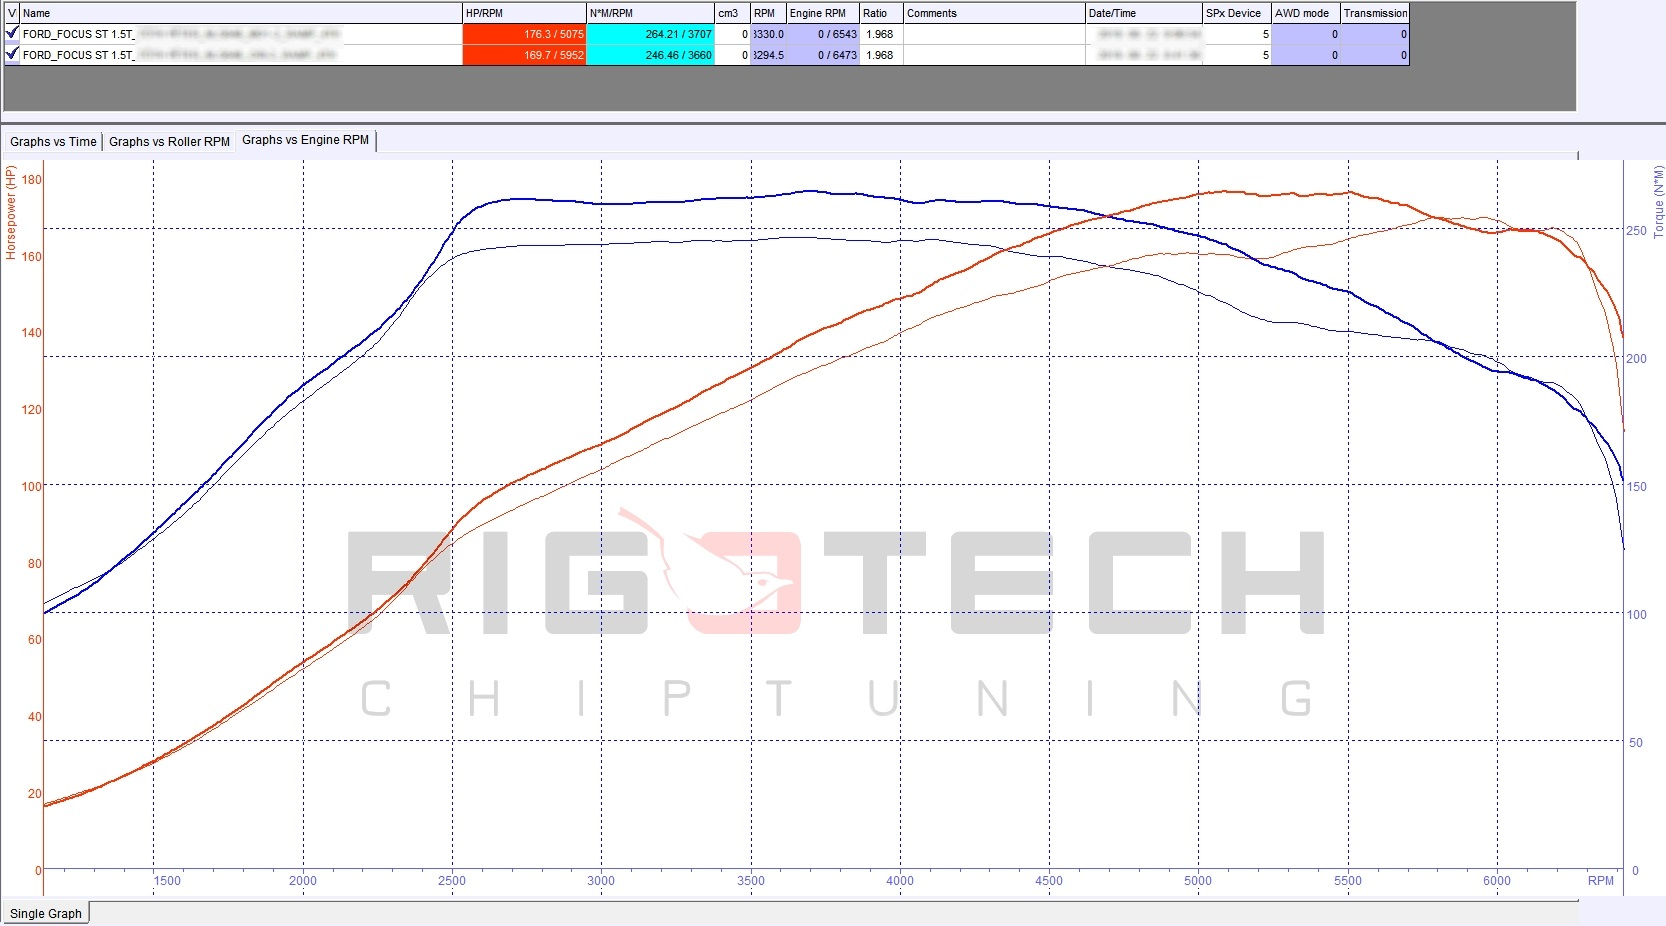 ford-fusion-usa-1-5-ecoboost-150-chiptuning-dyno